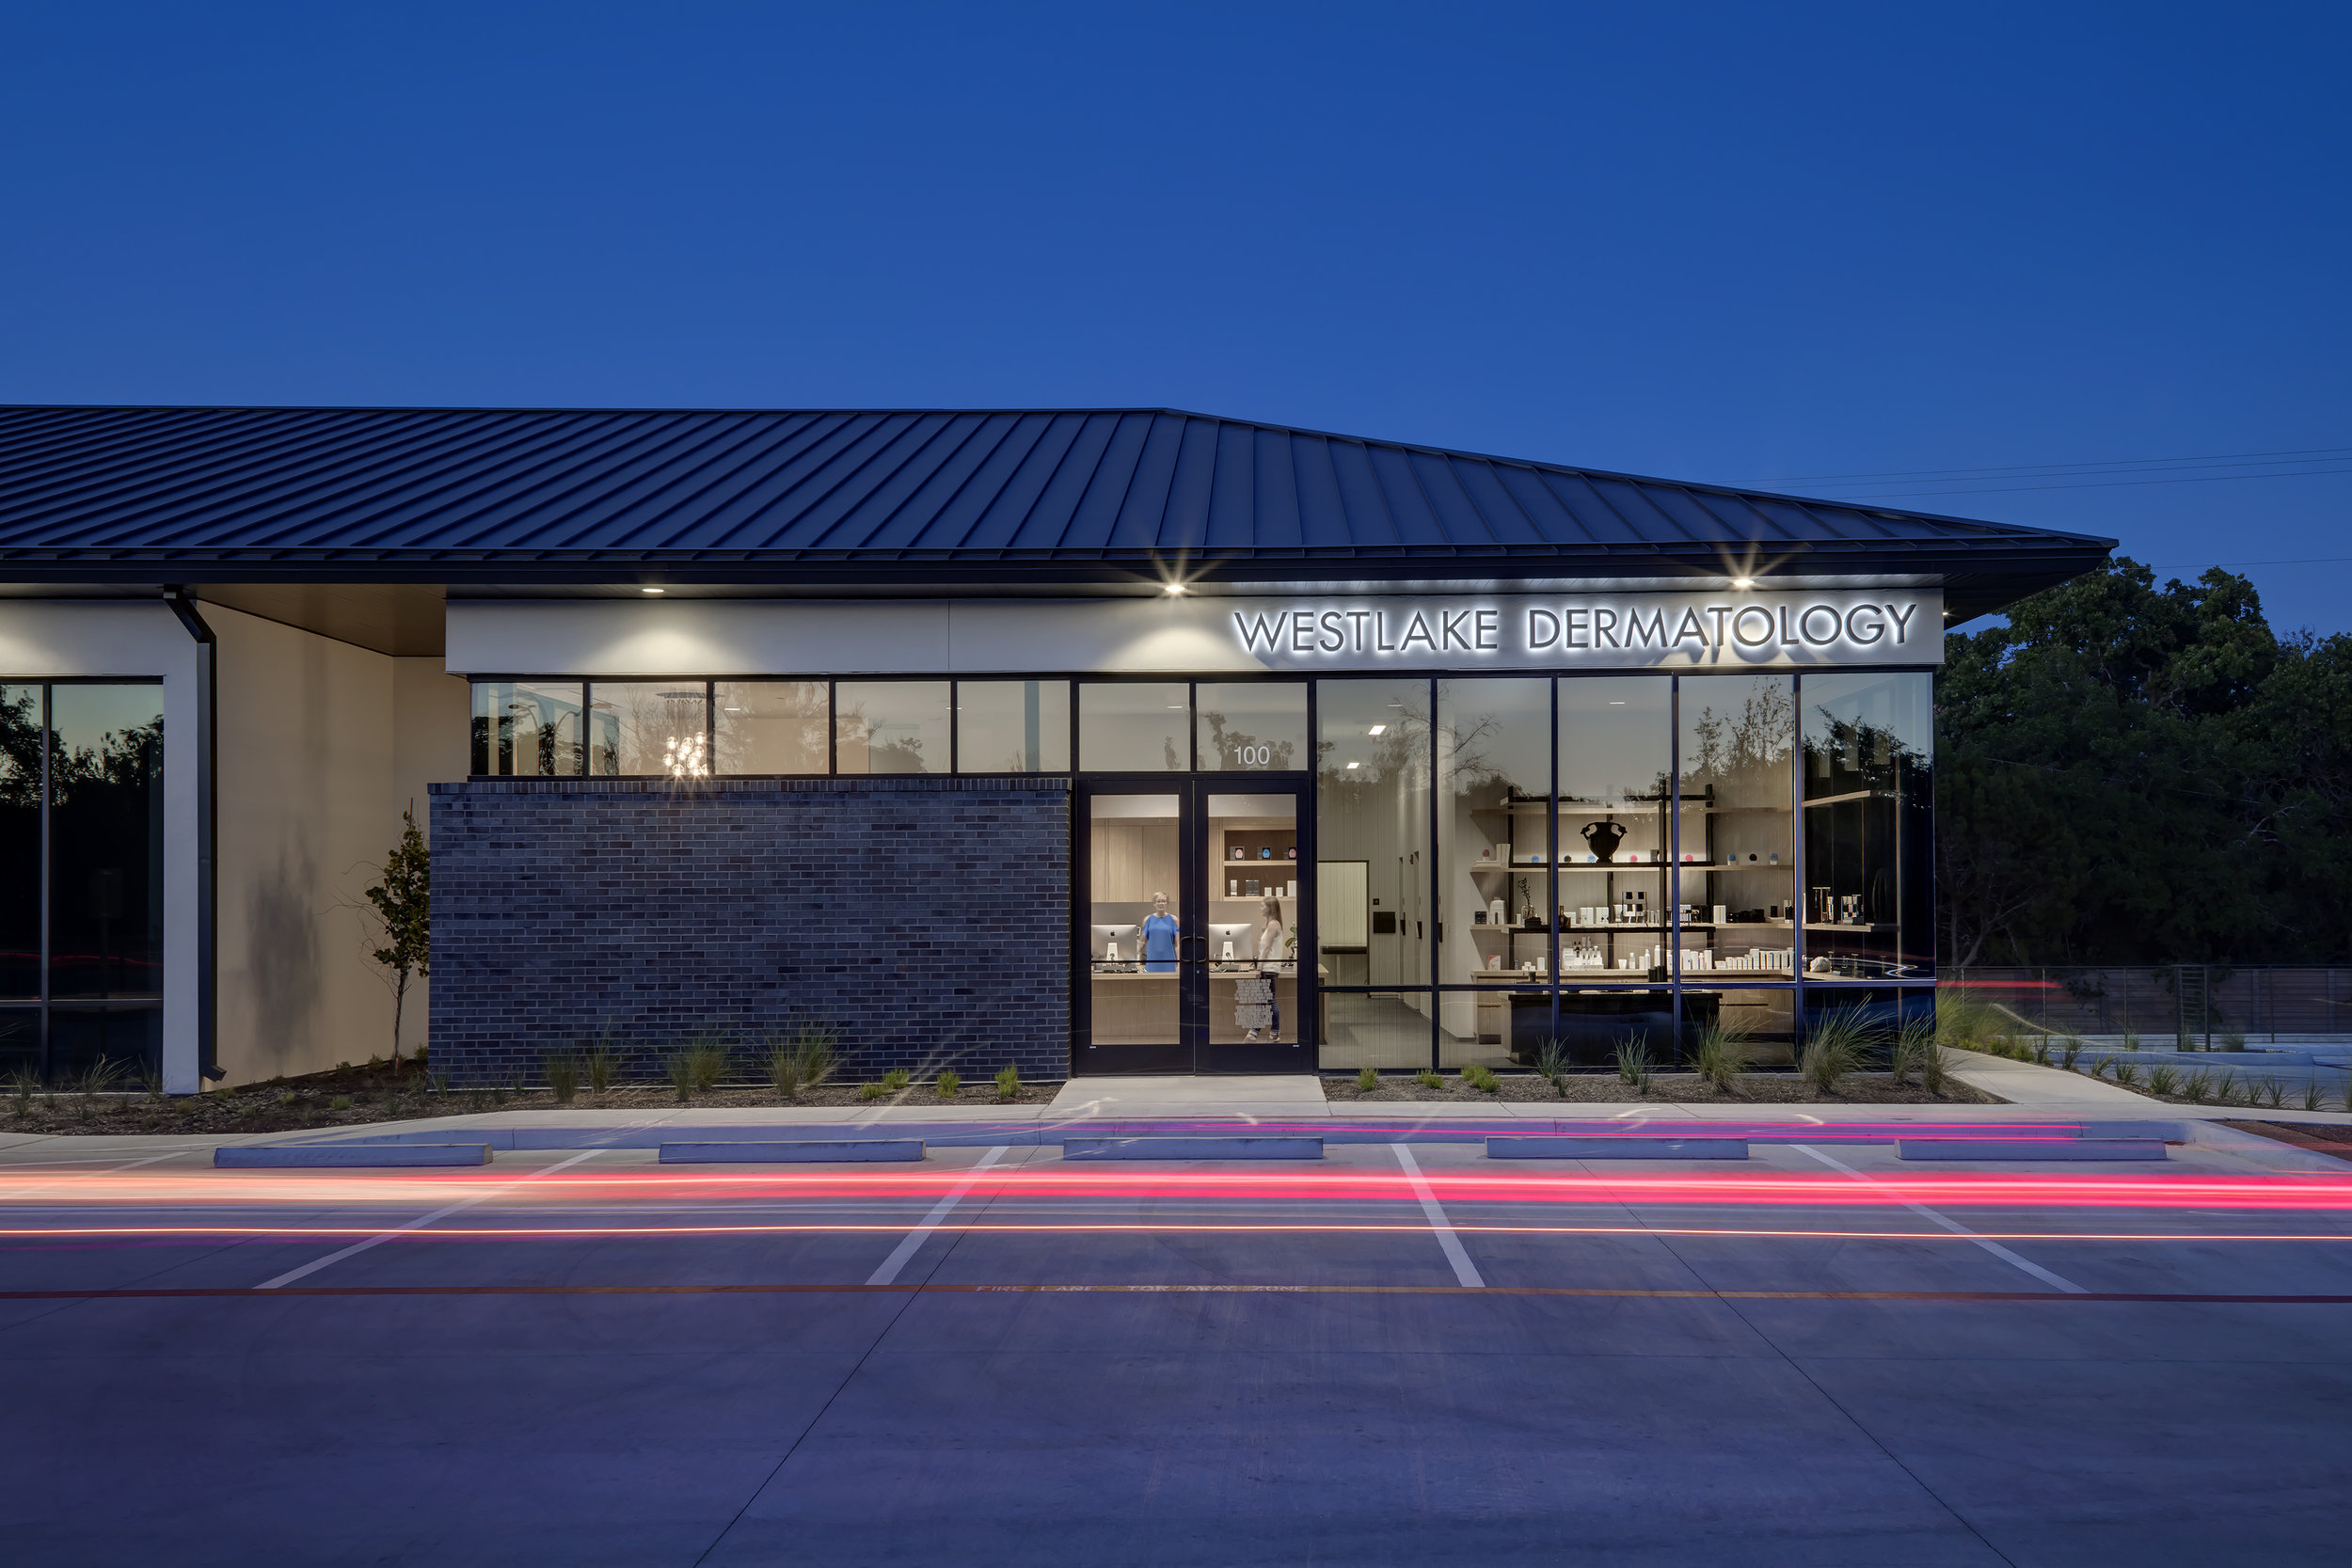 Westlake Dermatology Cedar Park by Matt Fajkus Architecture_exterior photo 3 by Charles Davis Smith.jpg